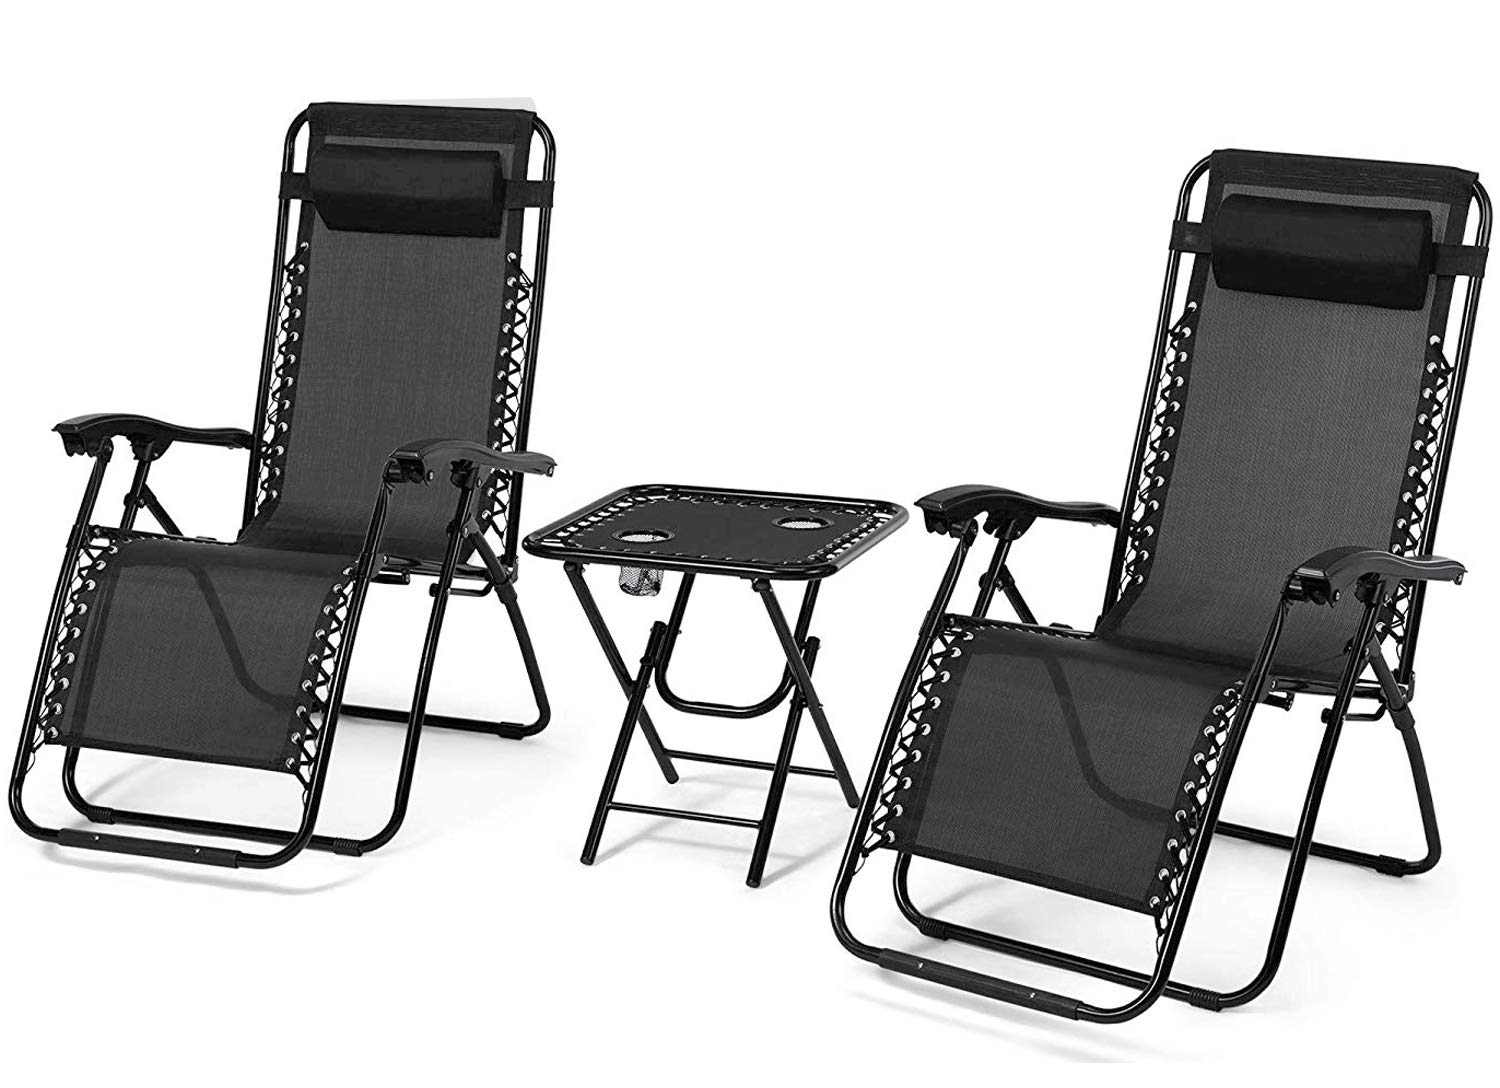 Rxmoto Zero Gravity Chairs Table with Cup Holder Set 3 Pieces Adjustable Folding Lounge Recliners with Head Rest Pillow for Patio Outdoor Yard Beach Pool Support 350lbs by Rxmoto